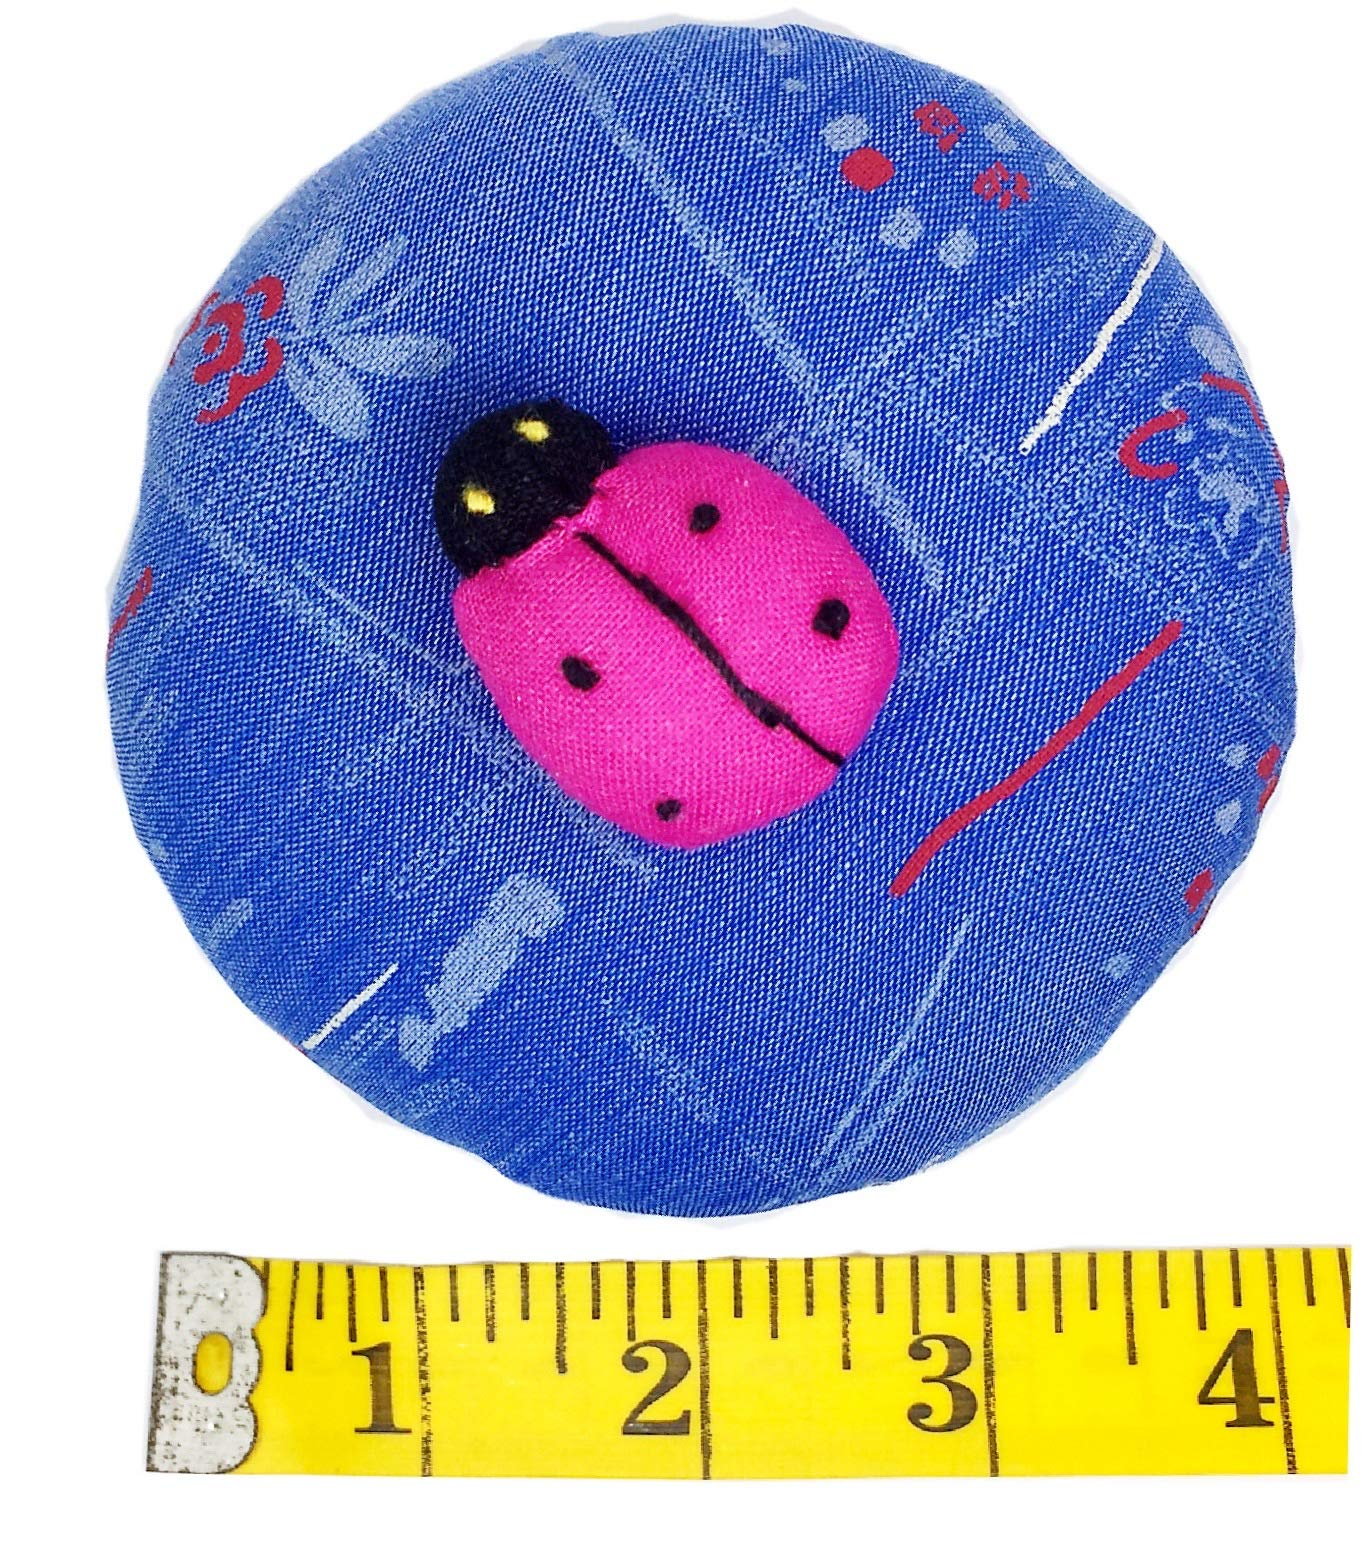 PeavyTailor Emery Pin Cushion 10oz Extra Large Keep Needles Clean and Sharp Needle Storage Organizer - Ladybug Deeppink by PeavyTailor